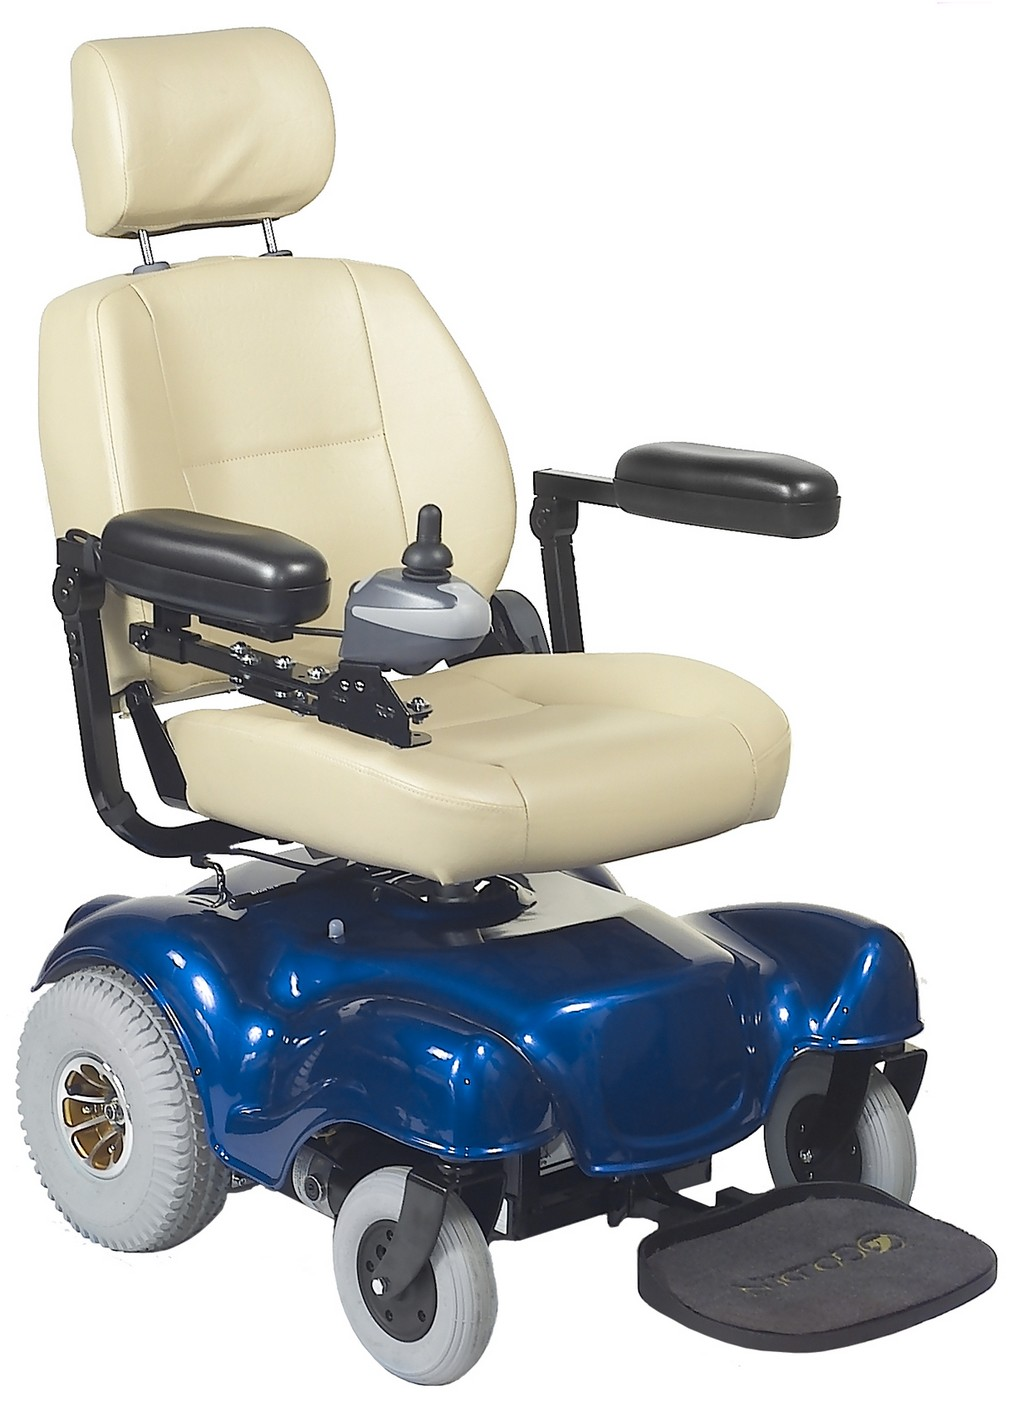 Used Power Chair Wheelchair Assistance Power Wheelchair Accessories